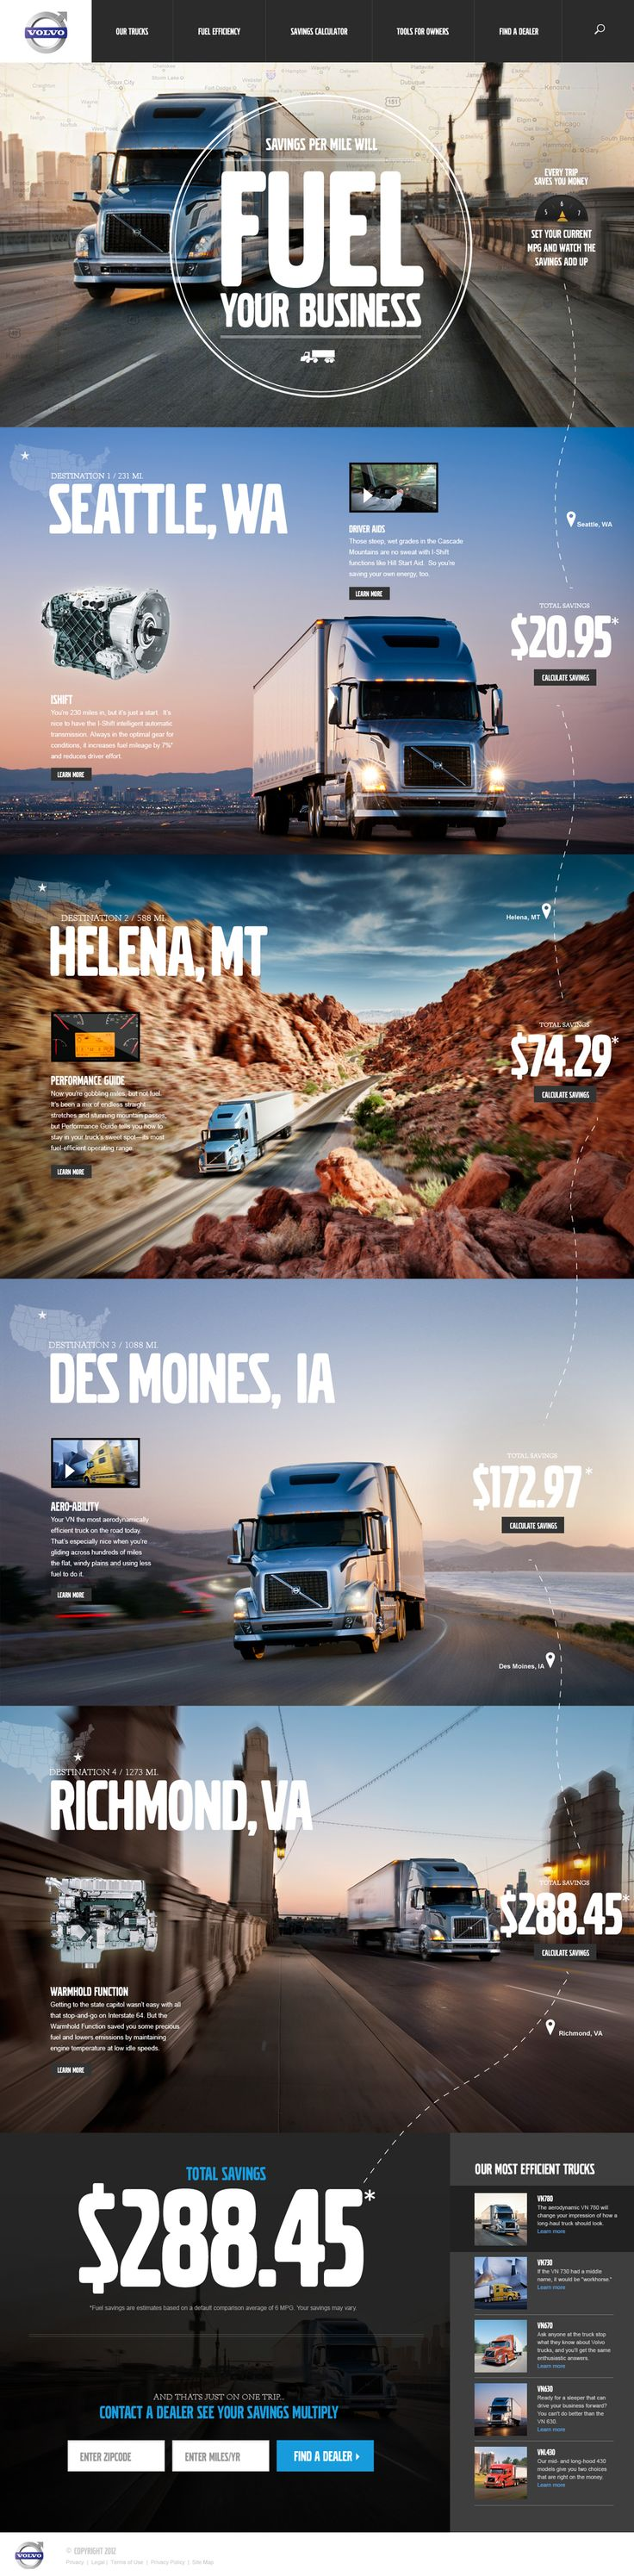 modern web design - Volvo Trucks website Designed by Megan Man